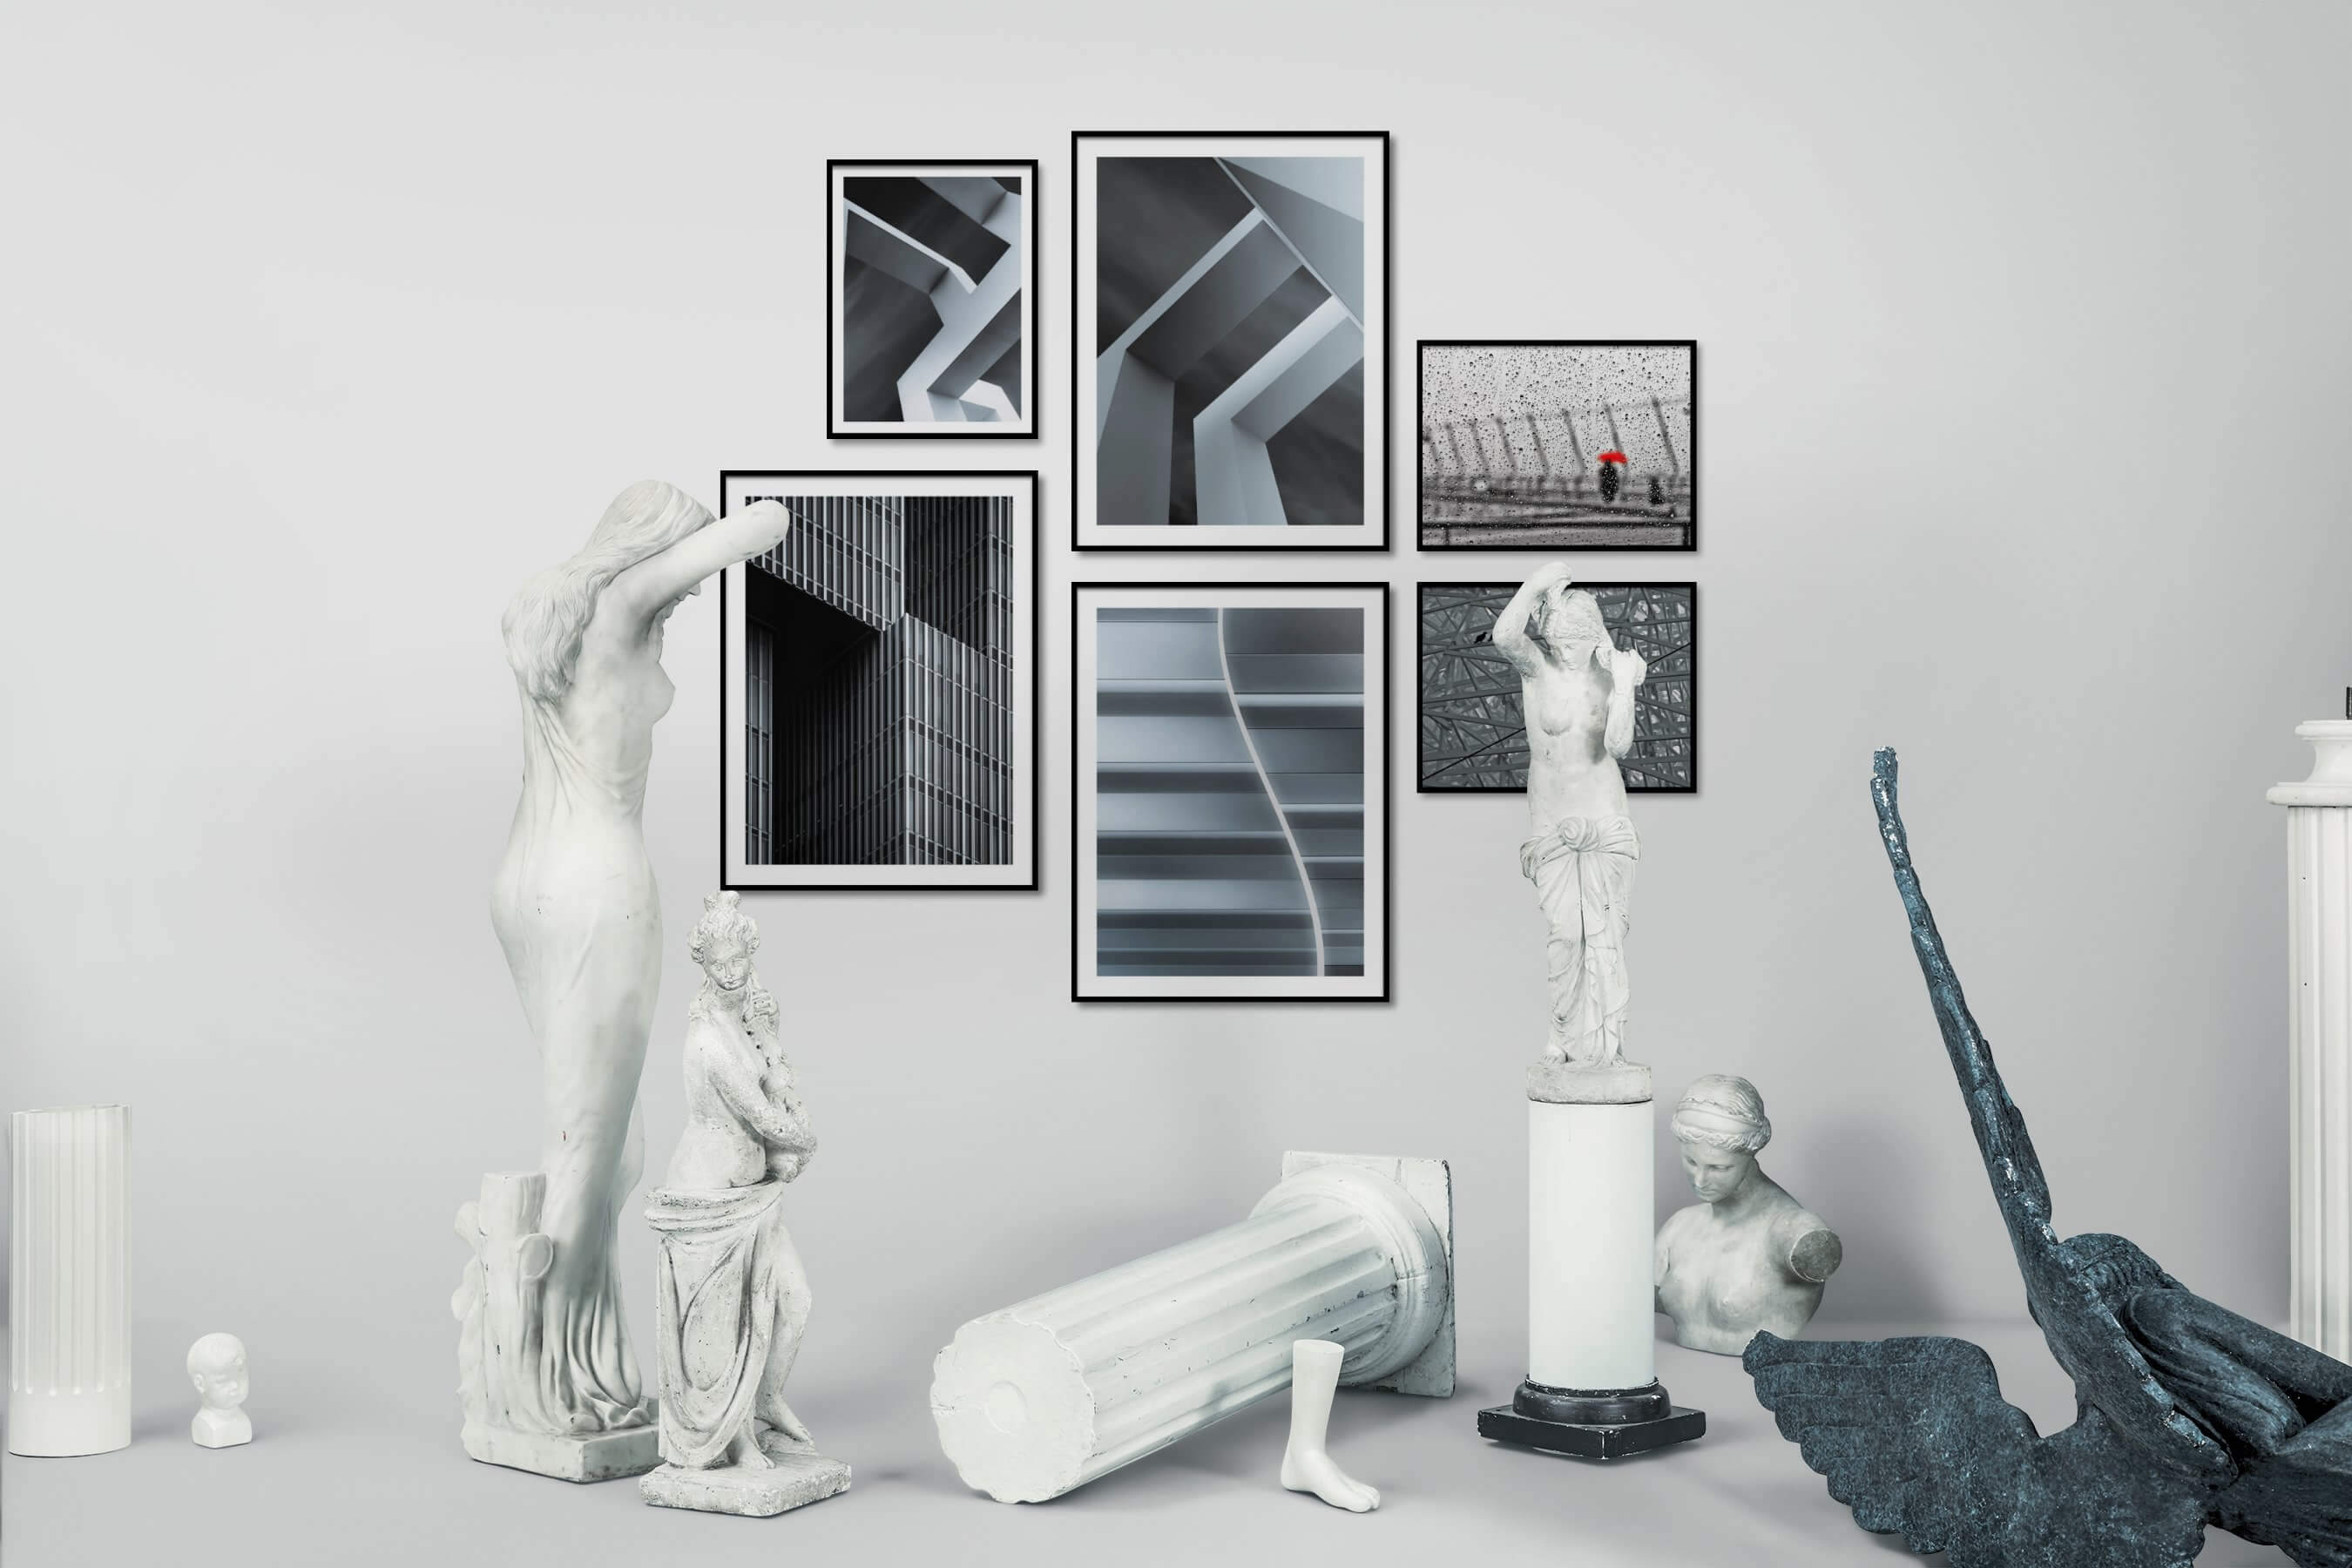 Gallery wall idea with six framed pictures arranged on a wall depicting Black & White, For the Minimalist, For the Maximalist, City Life, and For the Moderate